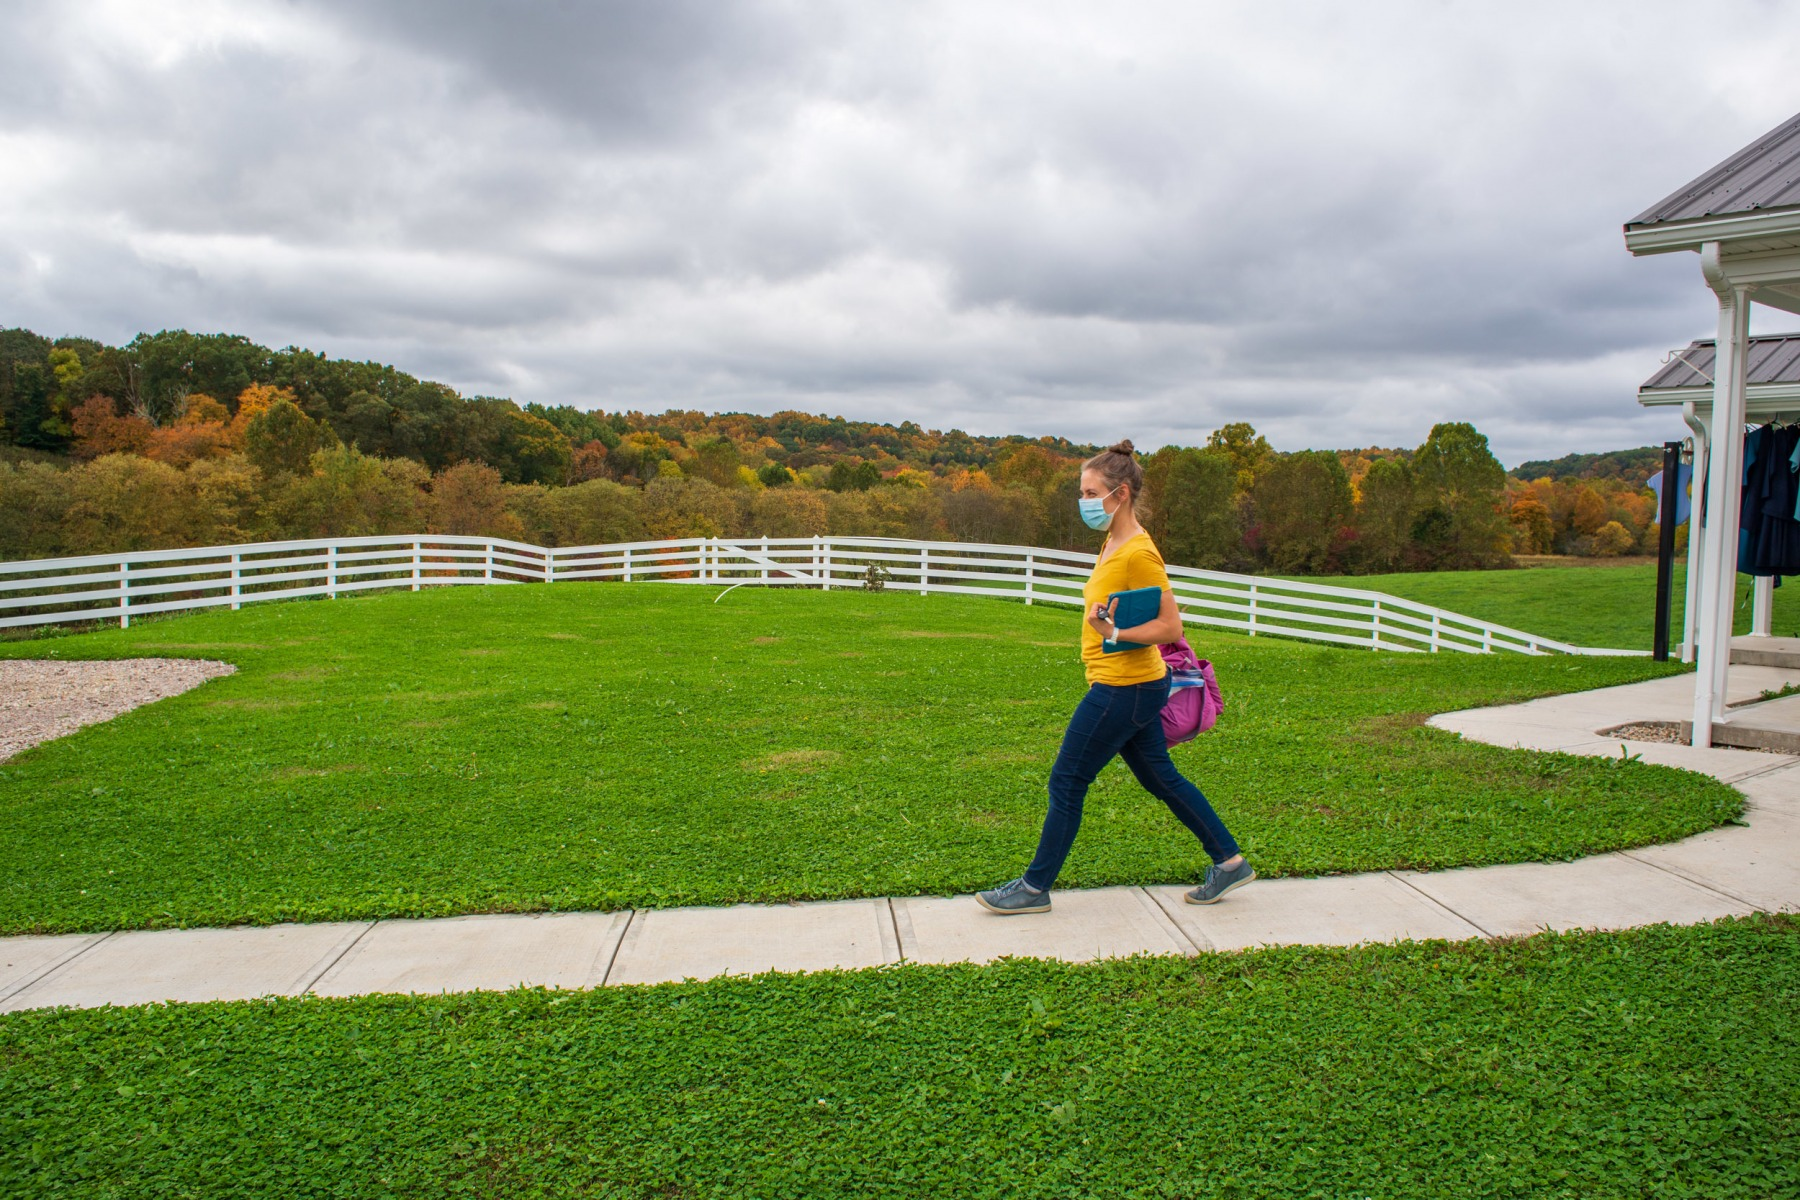 Lauren walks to her car after finishing a prenatal appointment with an Amish client in Hamden, Ohio.